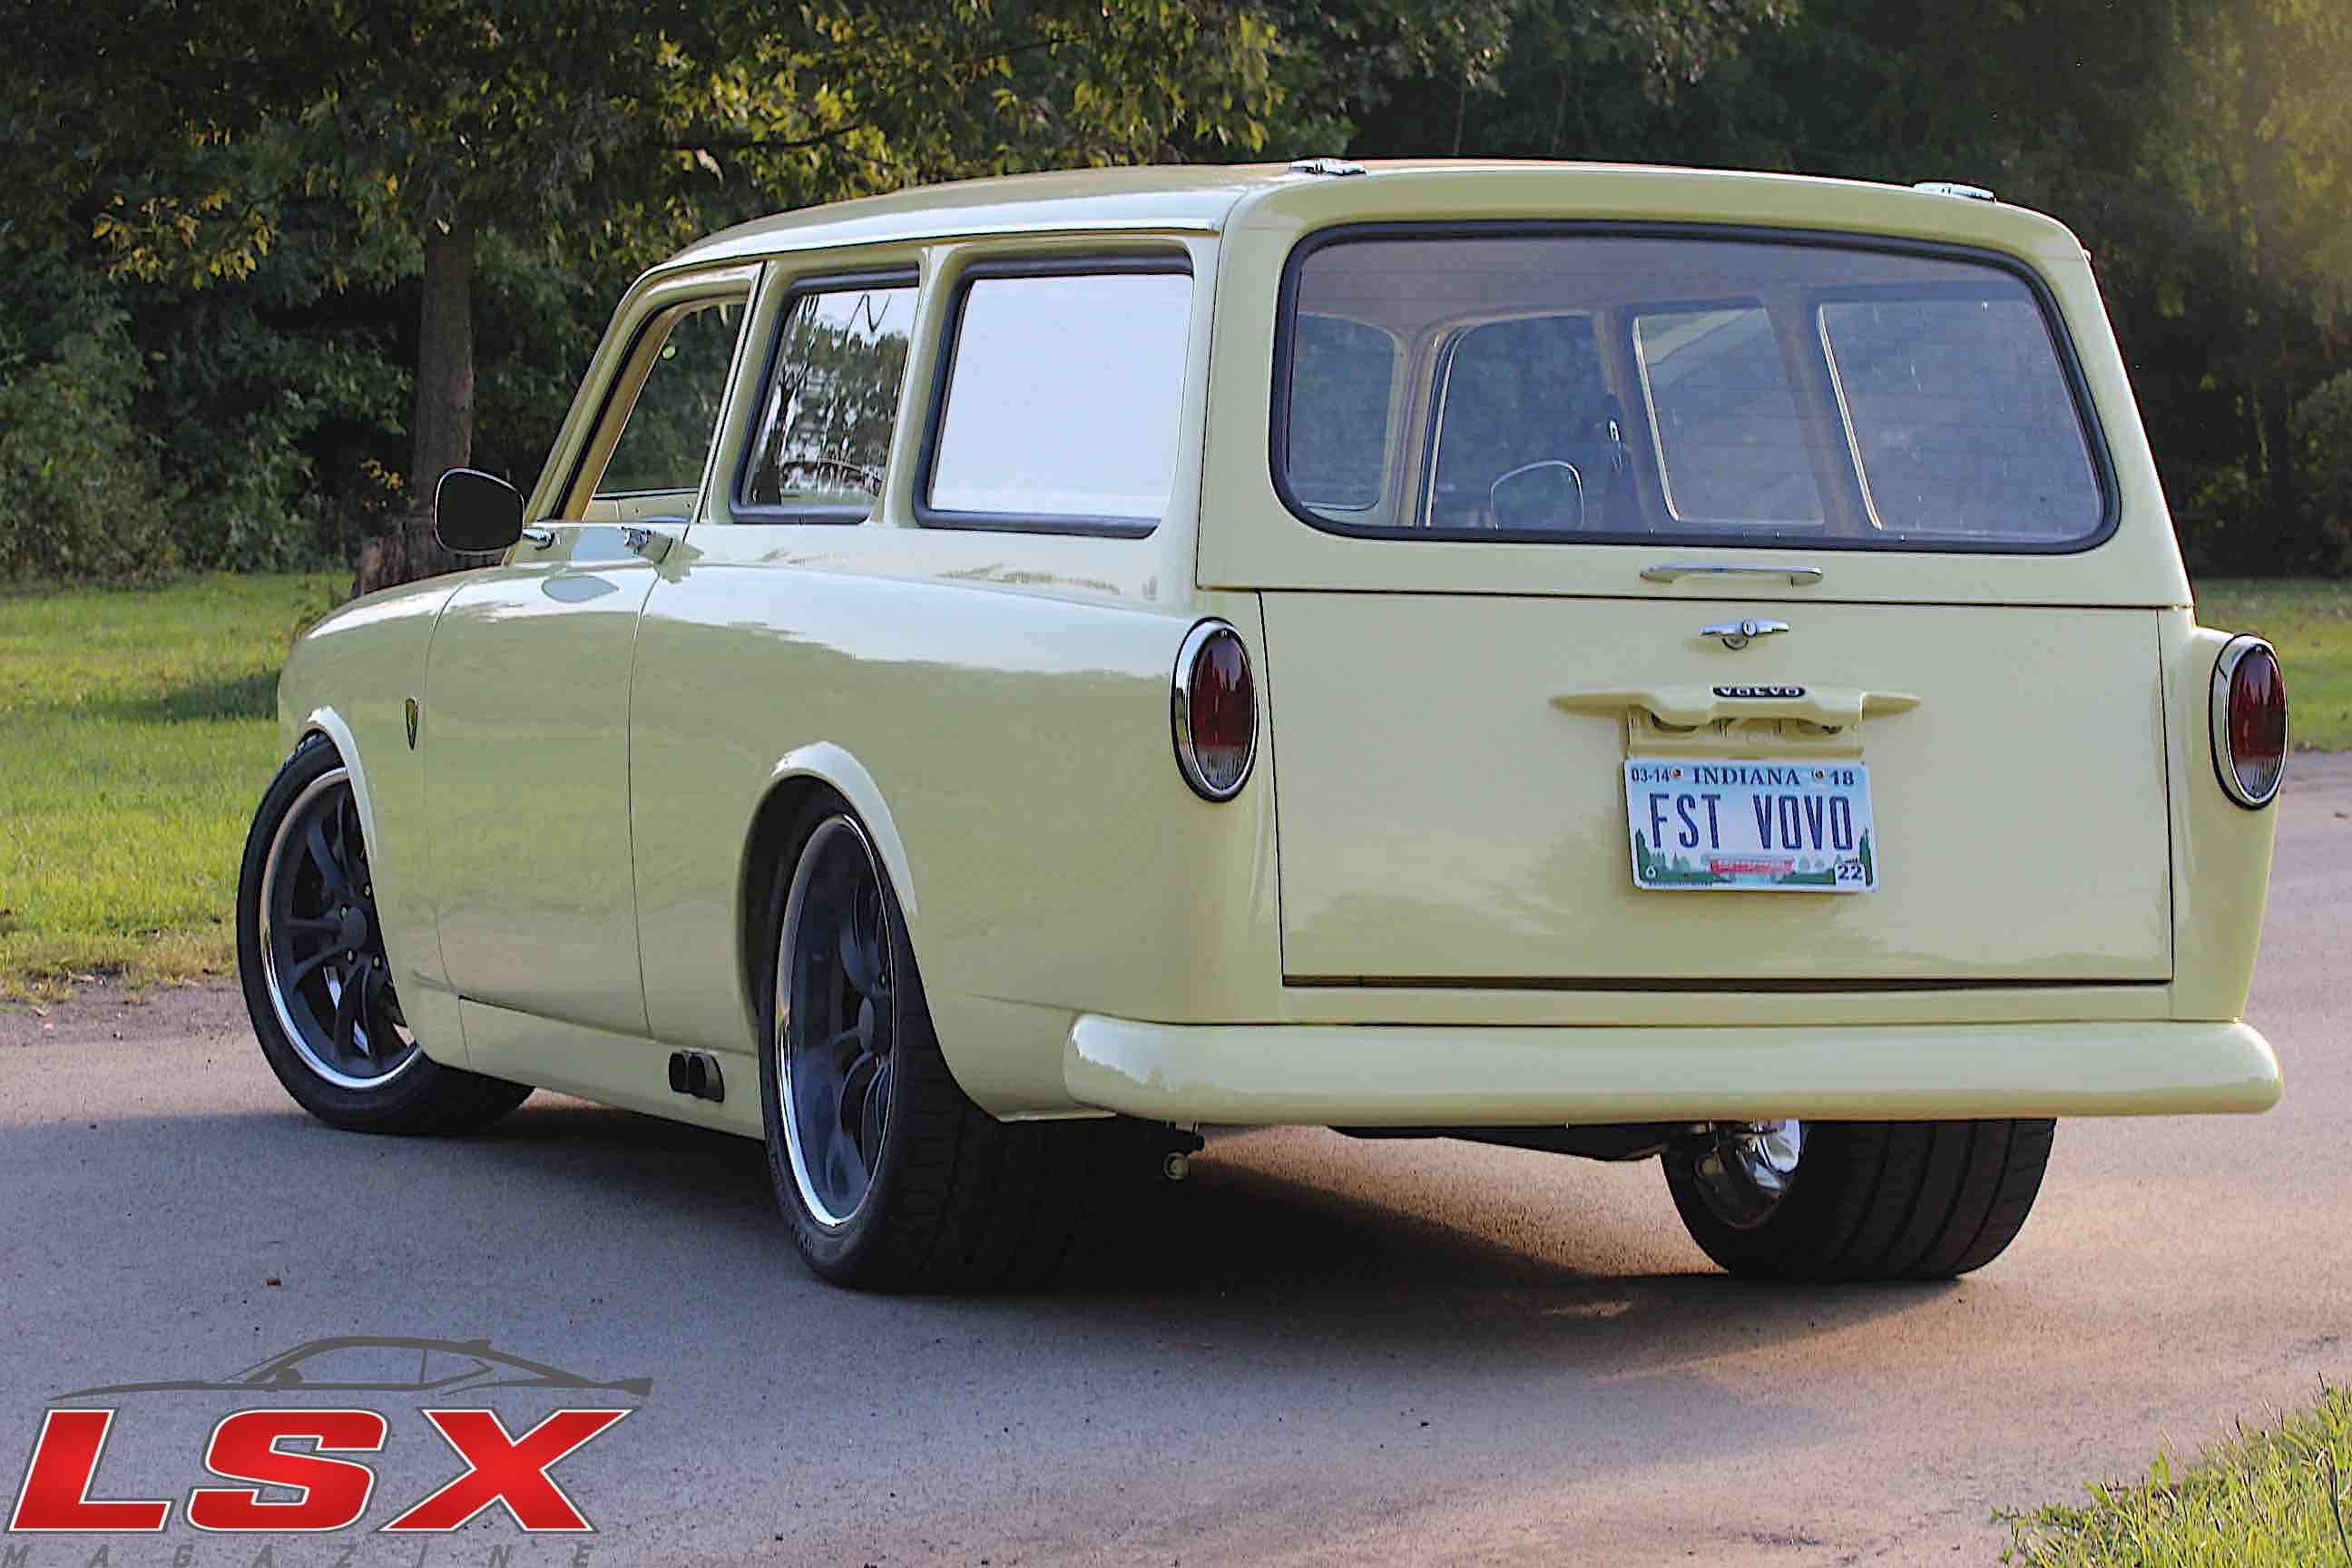 Volatile Volvo: Greg Carnforth's Immaculate LS-Powered '65 Volvo